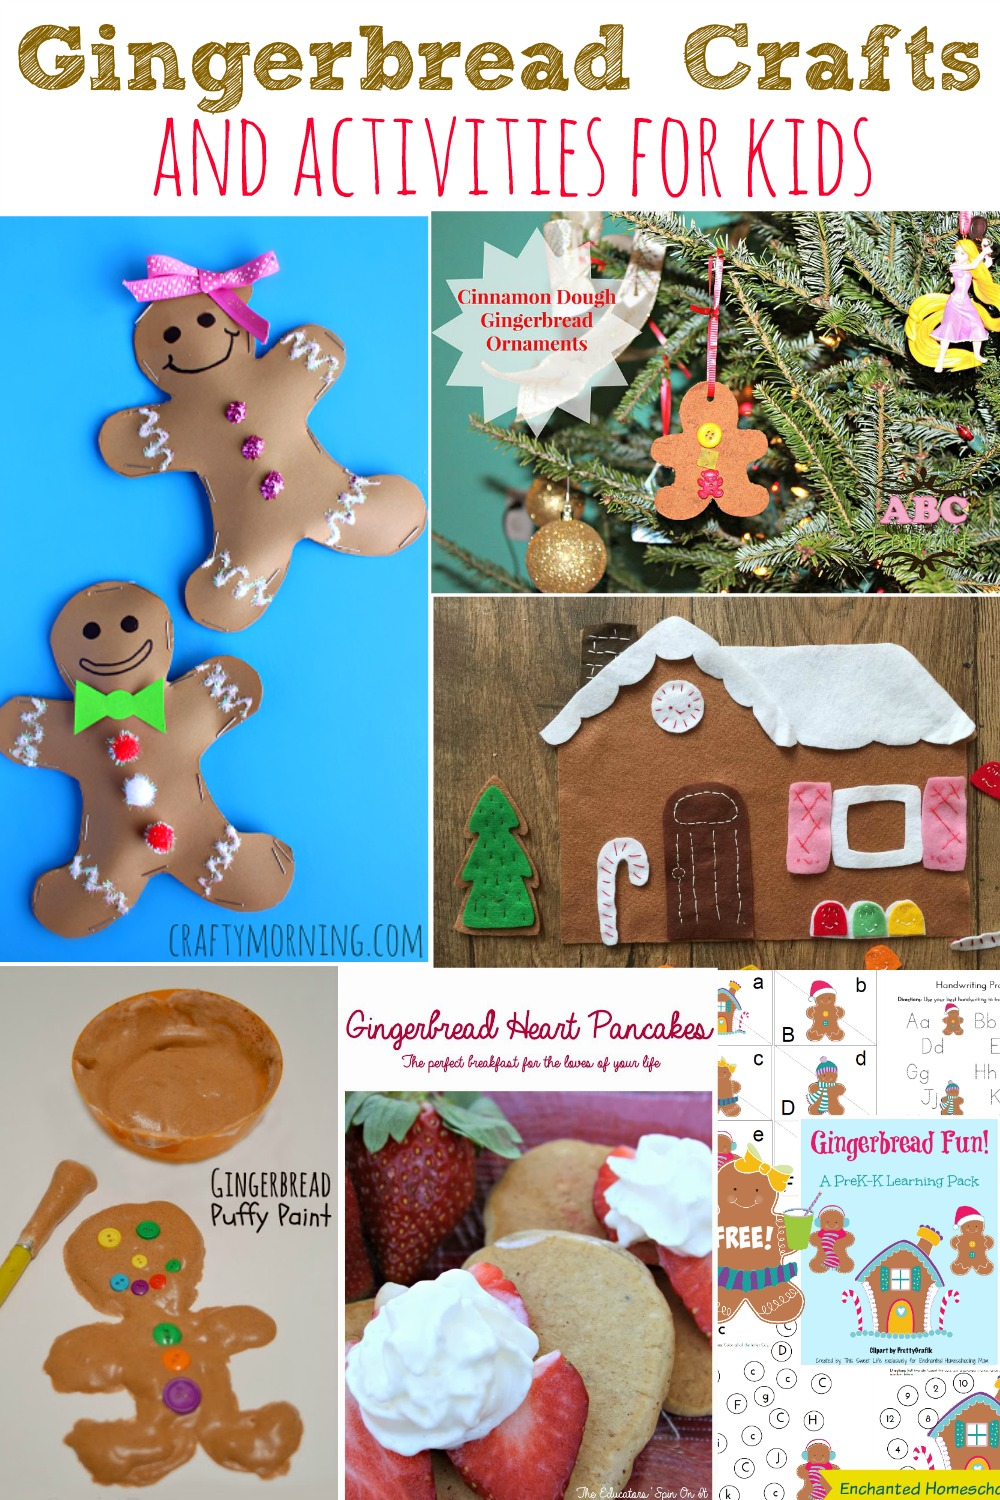 Gingerbread Crafts and Activities